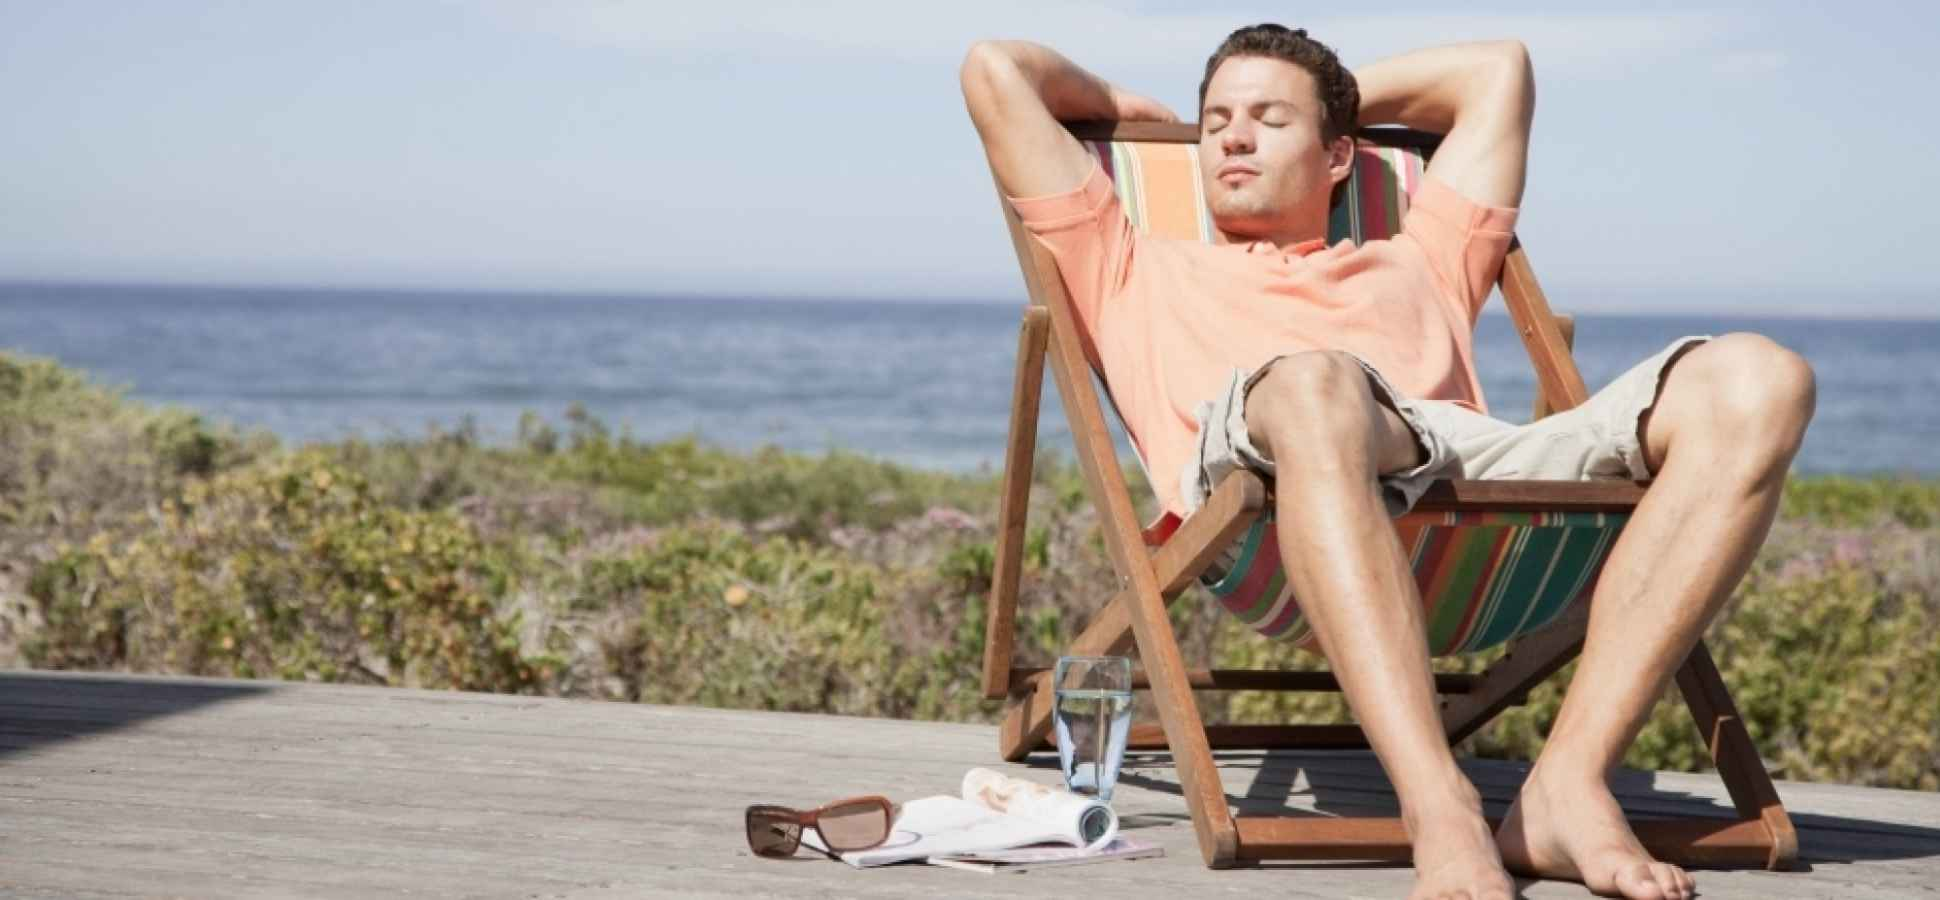 How Millionaires Relax and Max Their Vacation Time